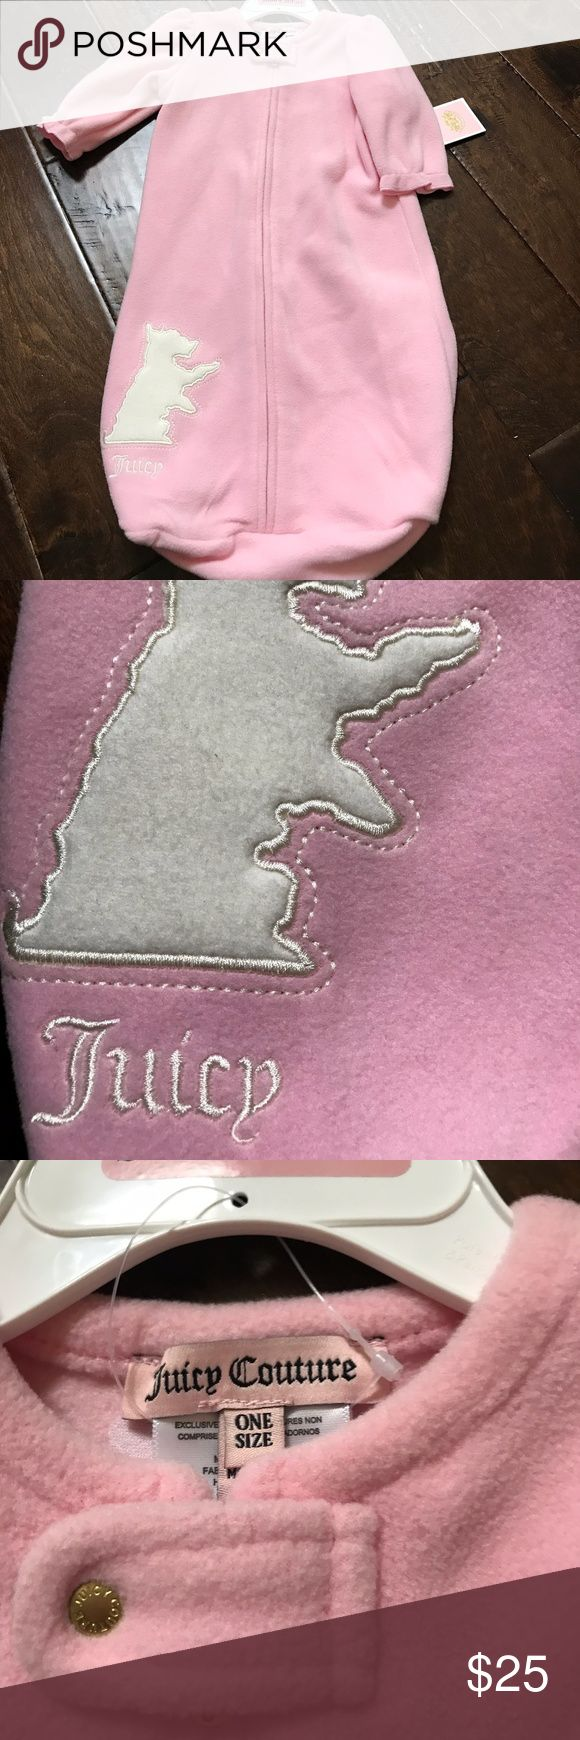 Juicy Couture Blanket Sleeper Brand new girls sleeper blanket used instead of actual blankets to keep baby warm. One Size Juicy Couture Accessories